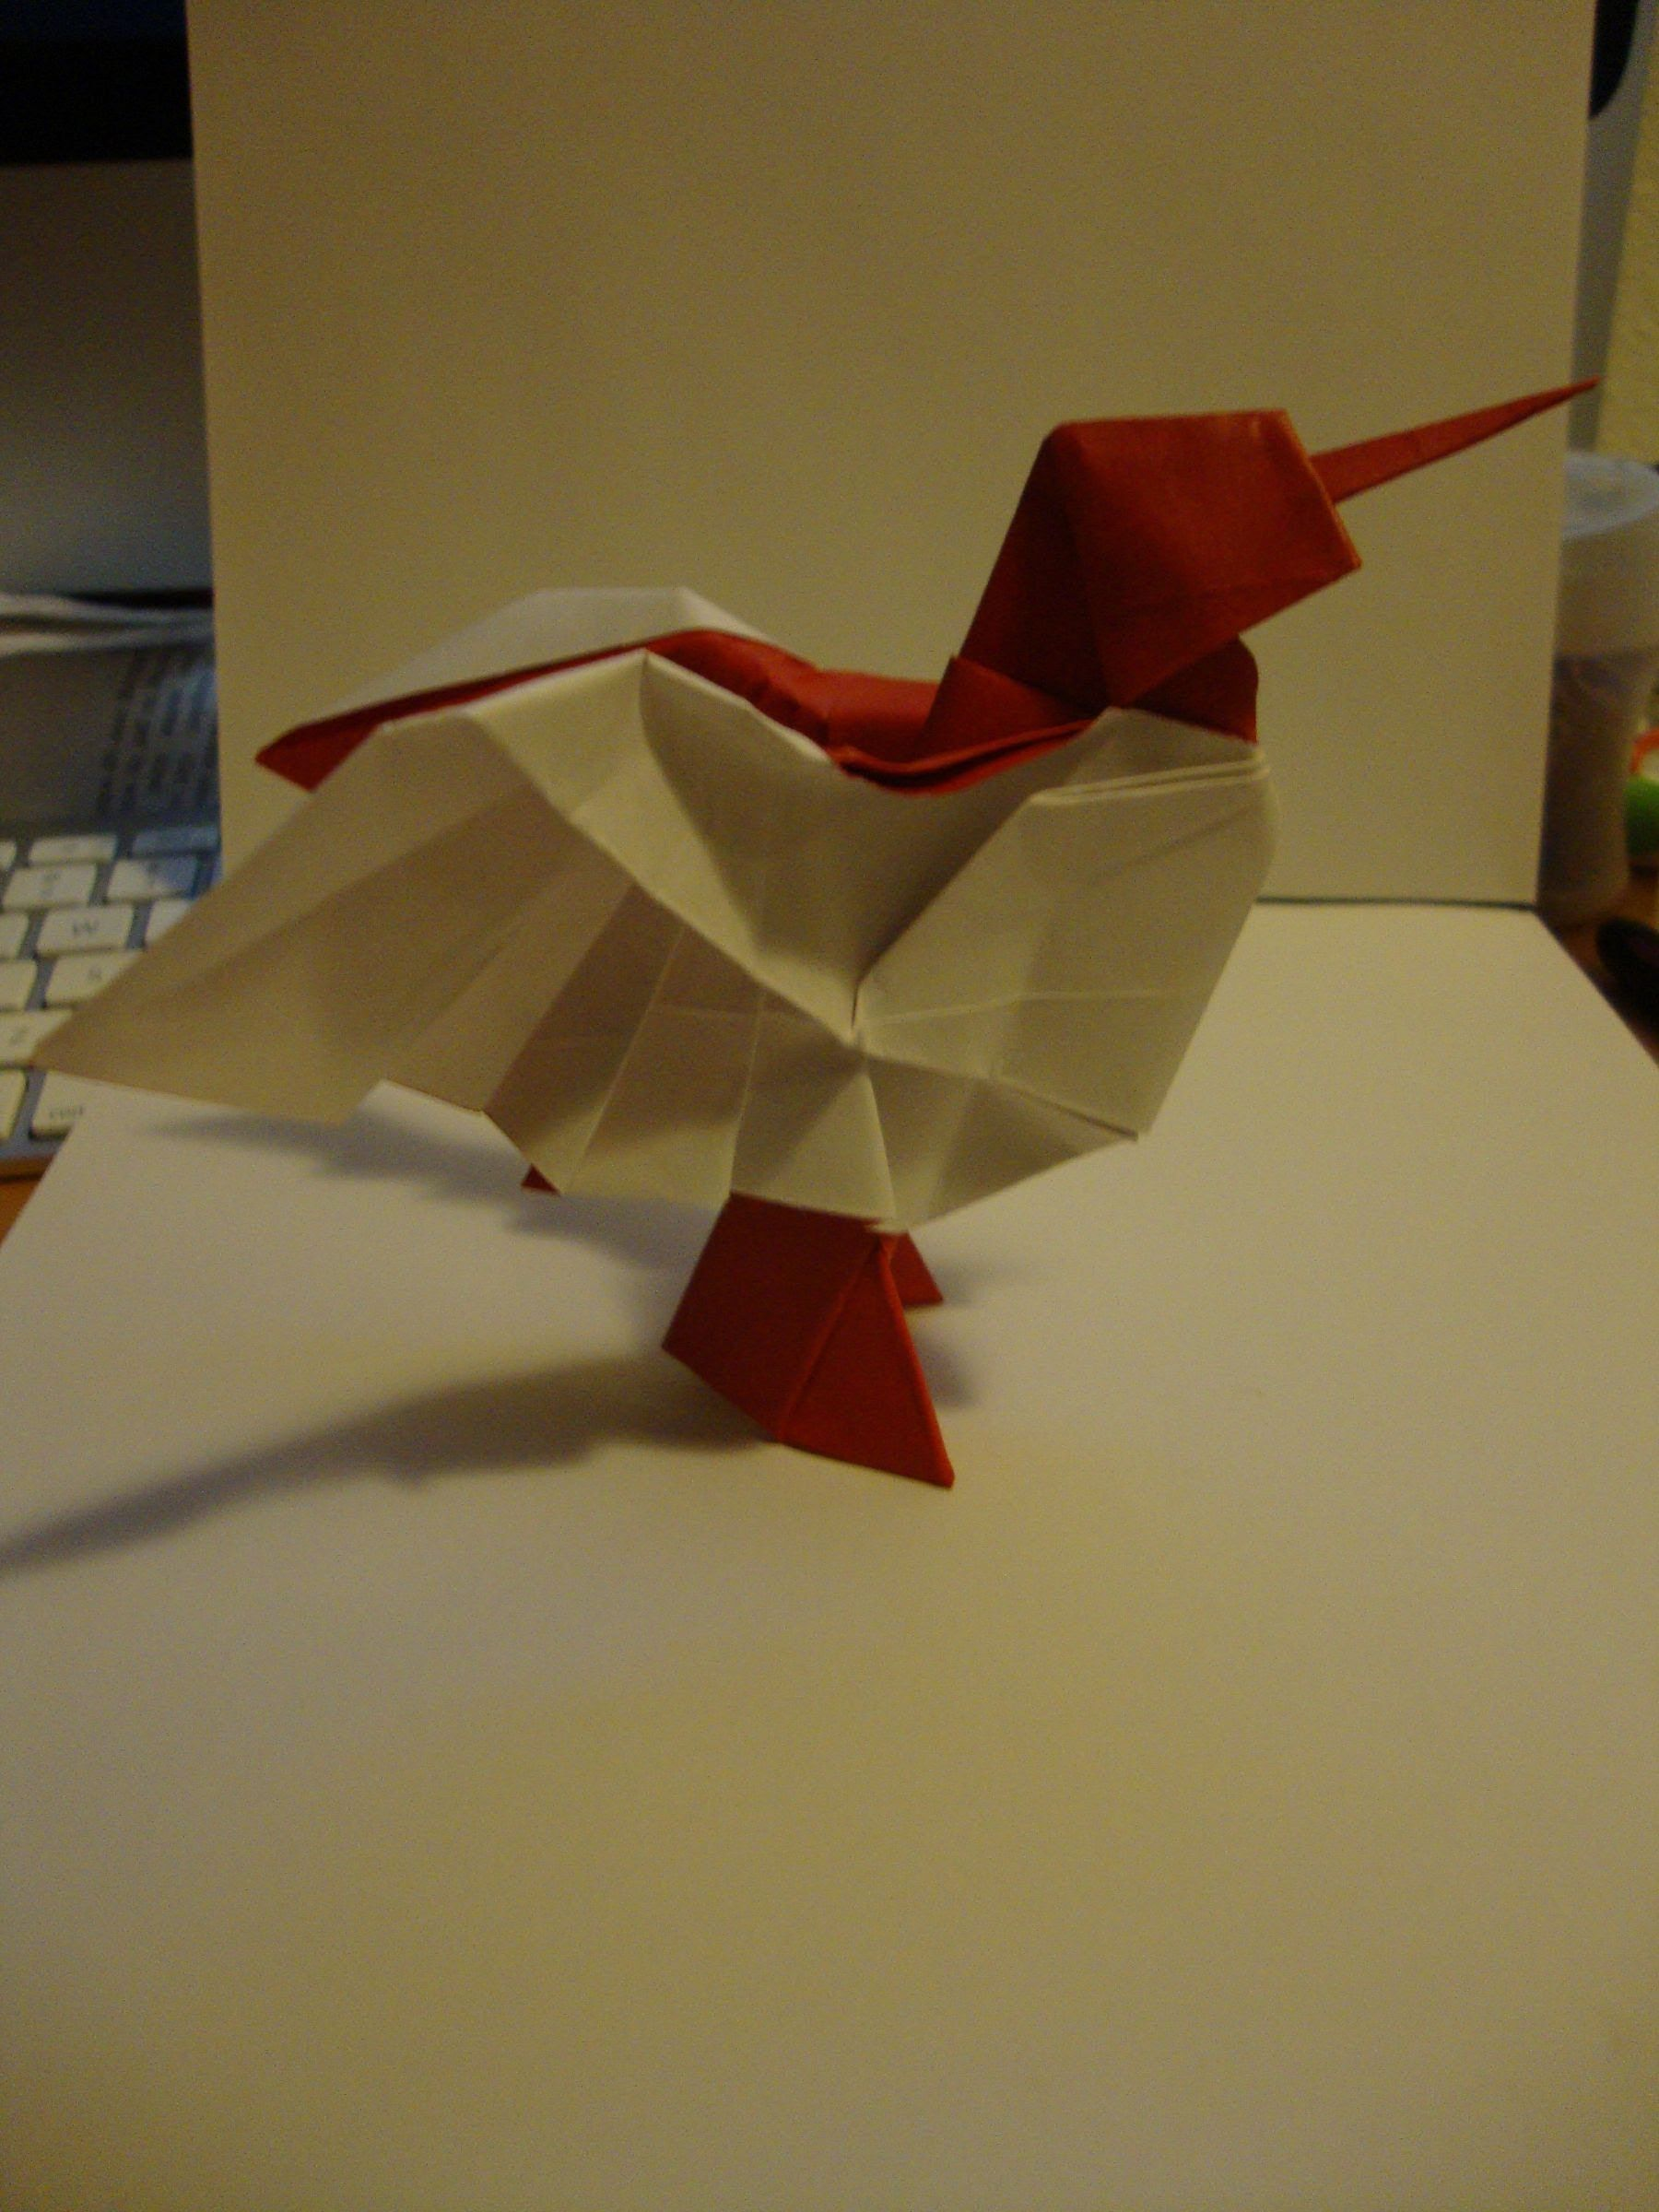 How to: Origami Hummingbird by Jesse Barr | DIY & Crafts ... - photo#20